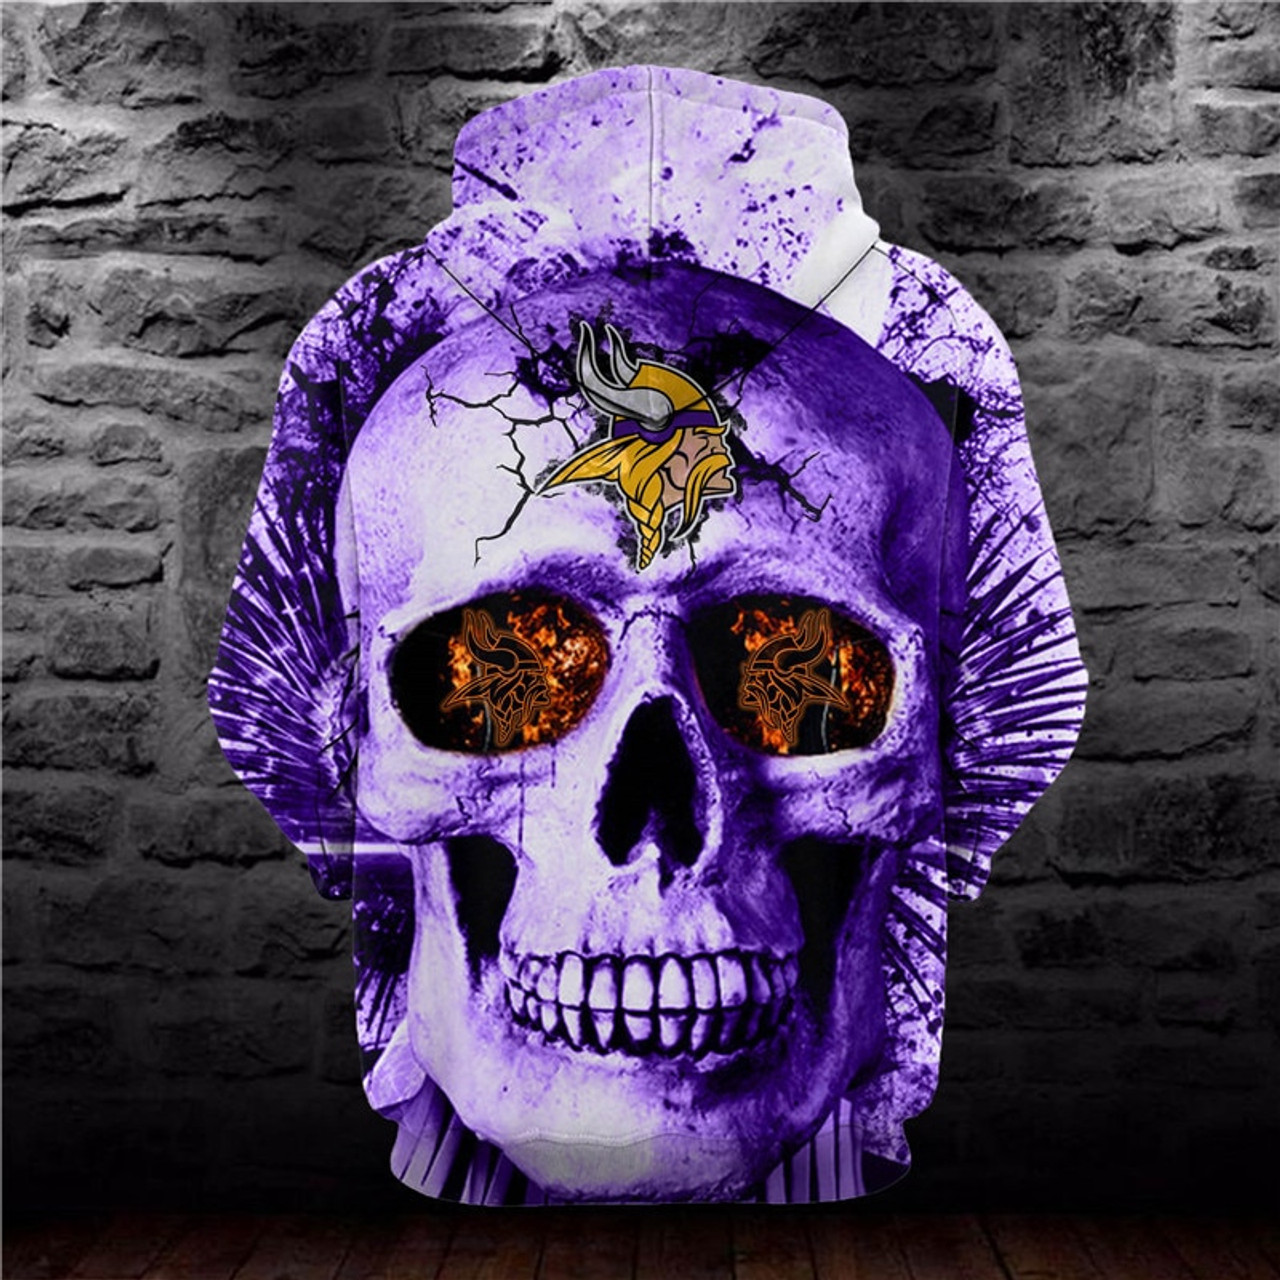 **(OFFICIALLY-LICENSED-N.F.L.MINNESOTA-VIKINGS-HOODIES/3D-PURPLE-NEON-SKULL & CUSTOM-3D-GRAPHIC-PRINTED-OFFICIAL-VIKINGS-SKULL-LOGOS,NICE-DOUBLE-SIDED-GRAPHIC-PRINT-ALL-OVER-DESIGN/VERY-UNIQUE-PREMIUM-PULLOVER-VIKINGS-TEAM-COLOR-HOODIES)**